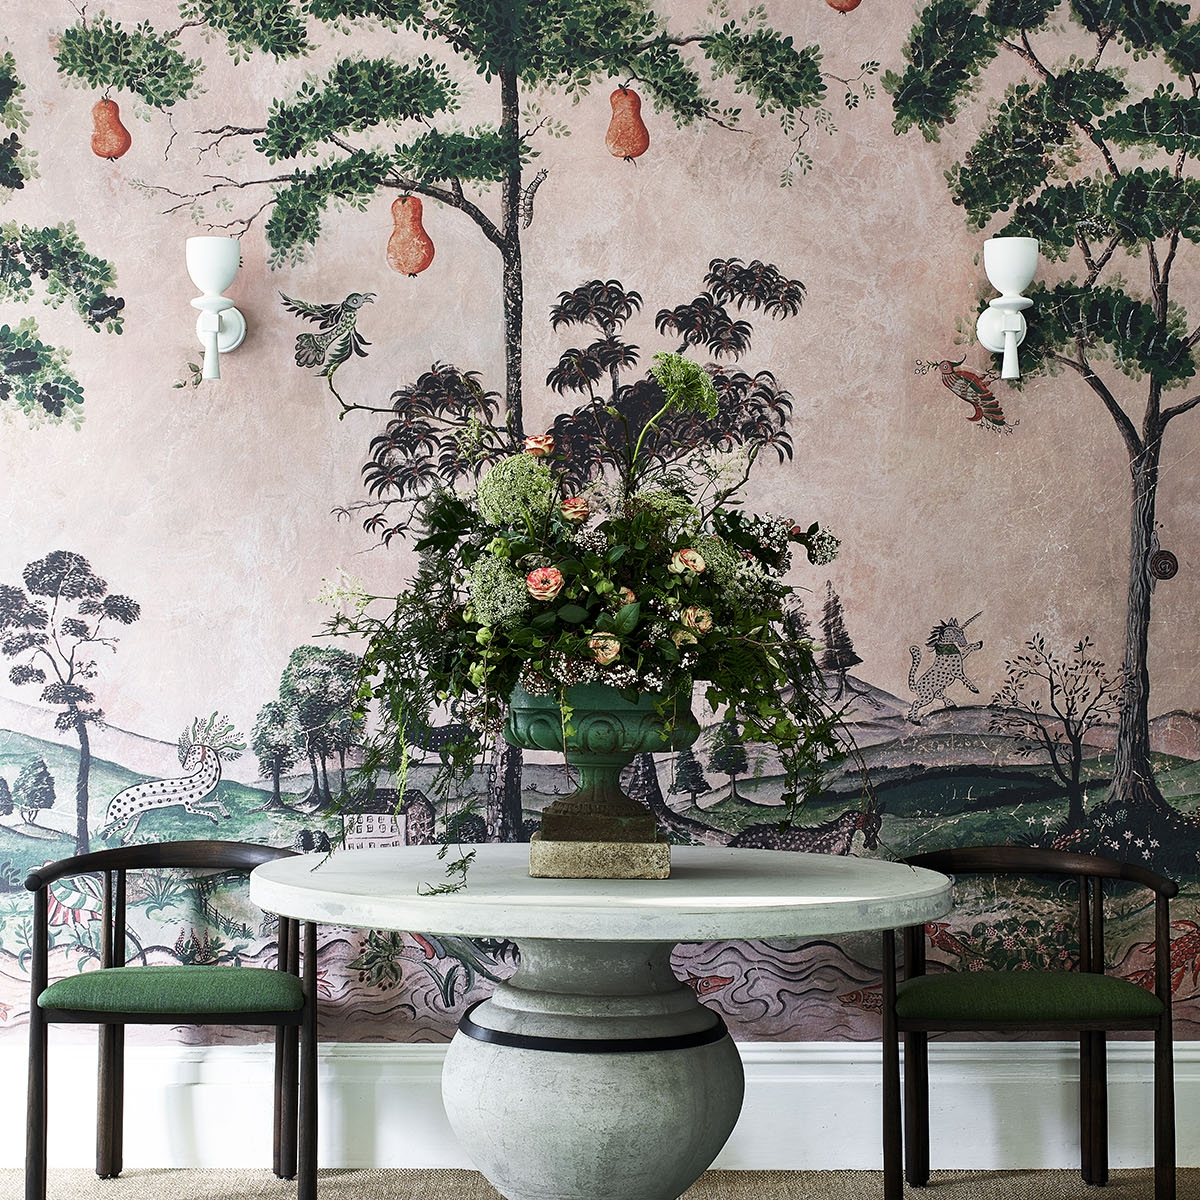 The very creative interior stylist Sally Denning shares her career journey and inspirations with Sophie Robinson in the Designer Spotlight feature. #homesandgardens #interiorstyling #wallmural #sophierobinson